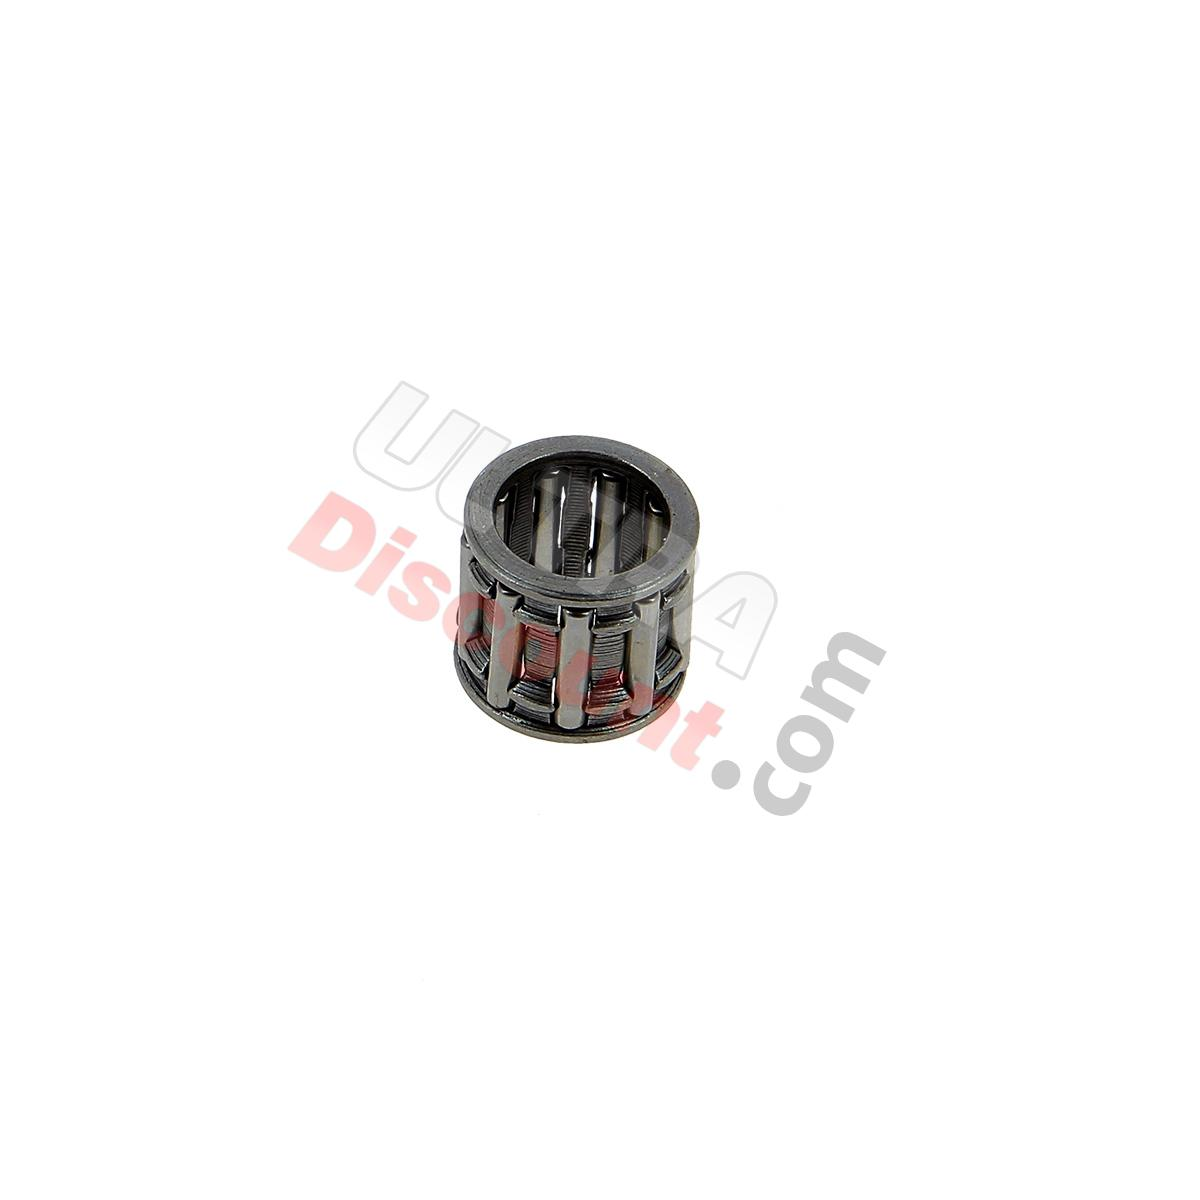 Reinforced Needle Bearing For Pocket Bike Liquid Cooled Engine Parts Tuner Parts Mt4a